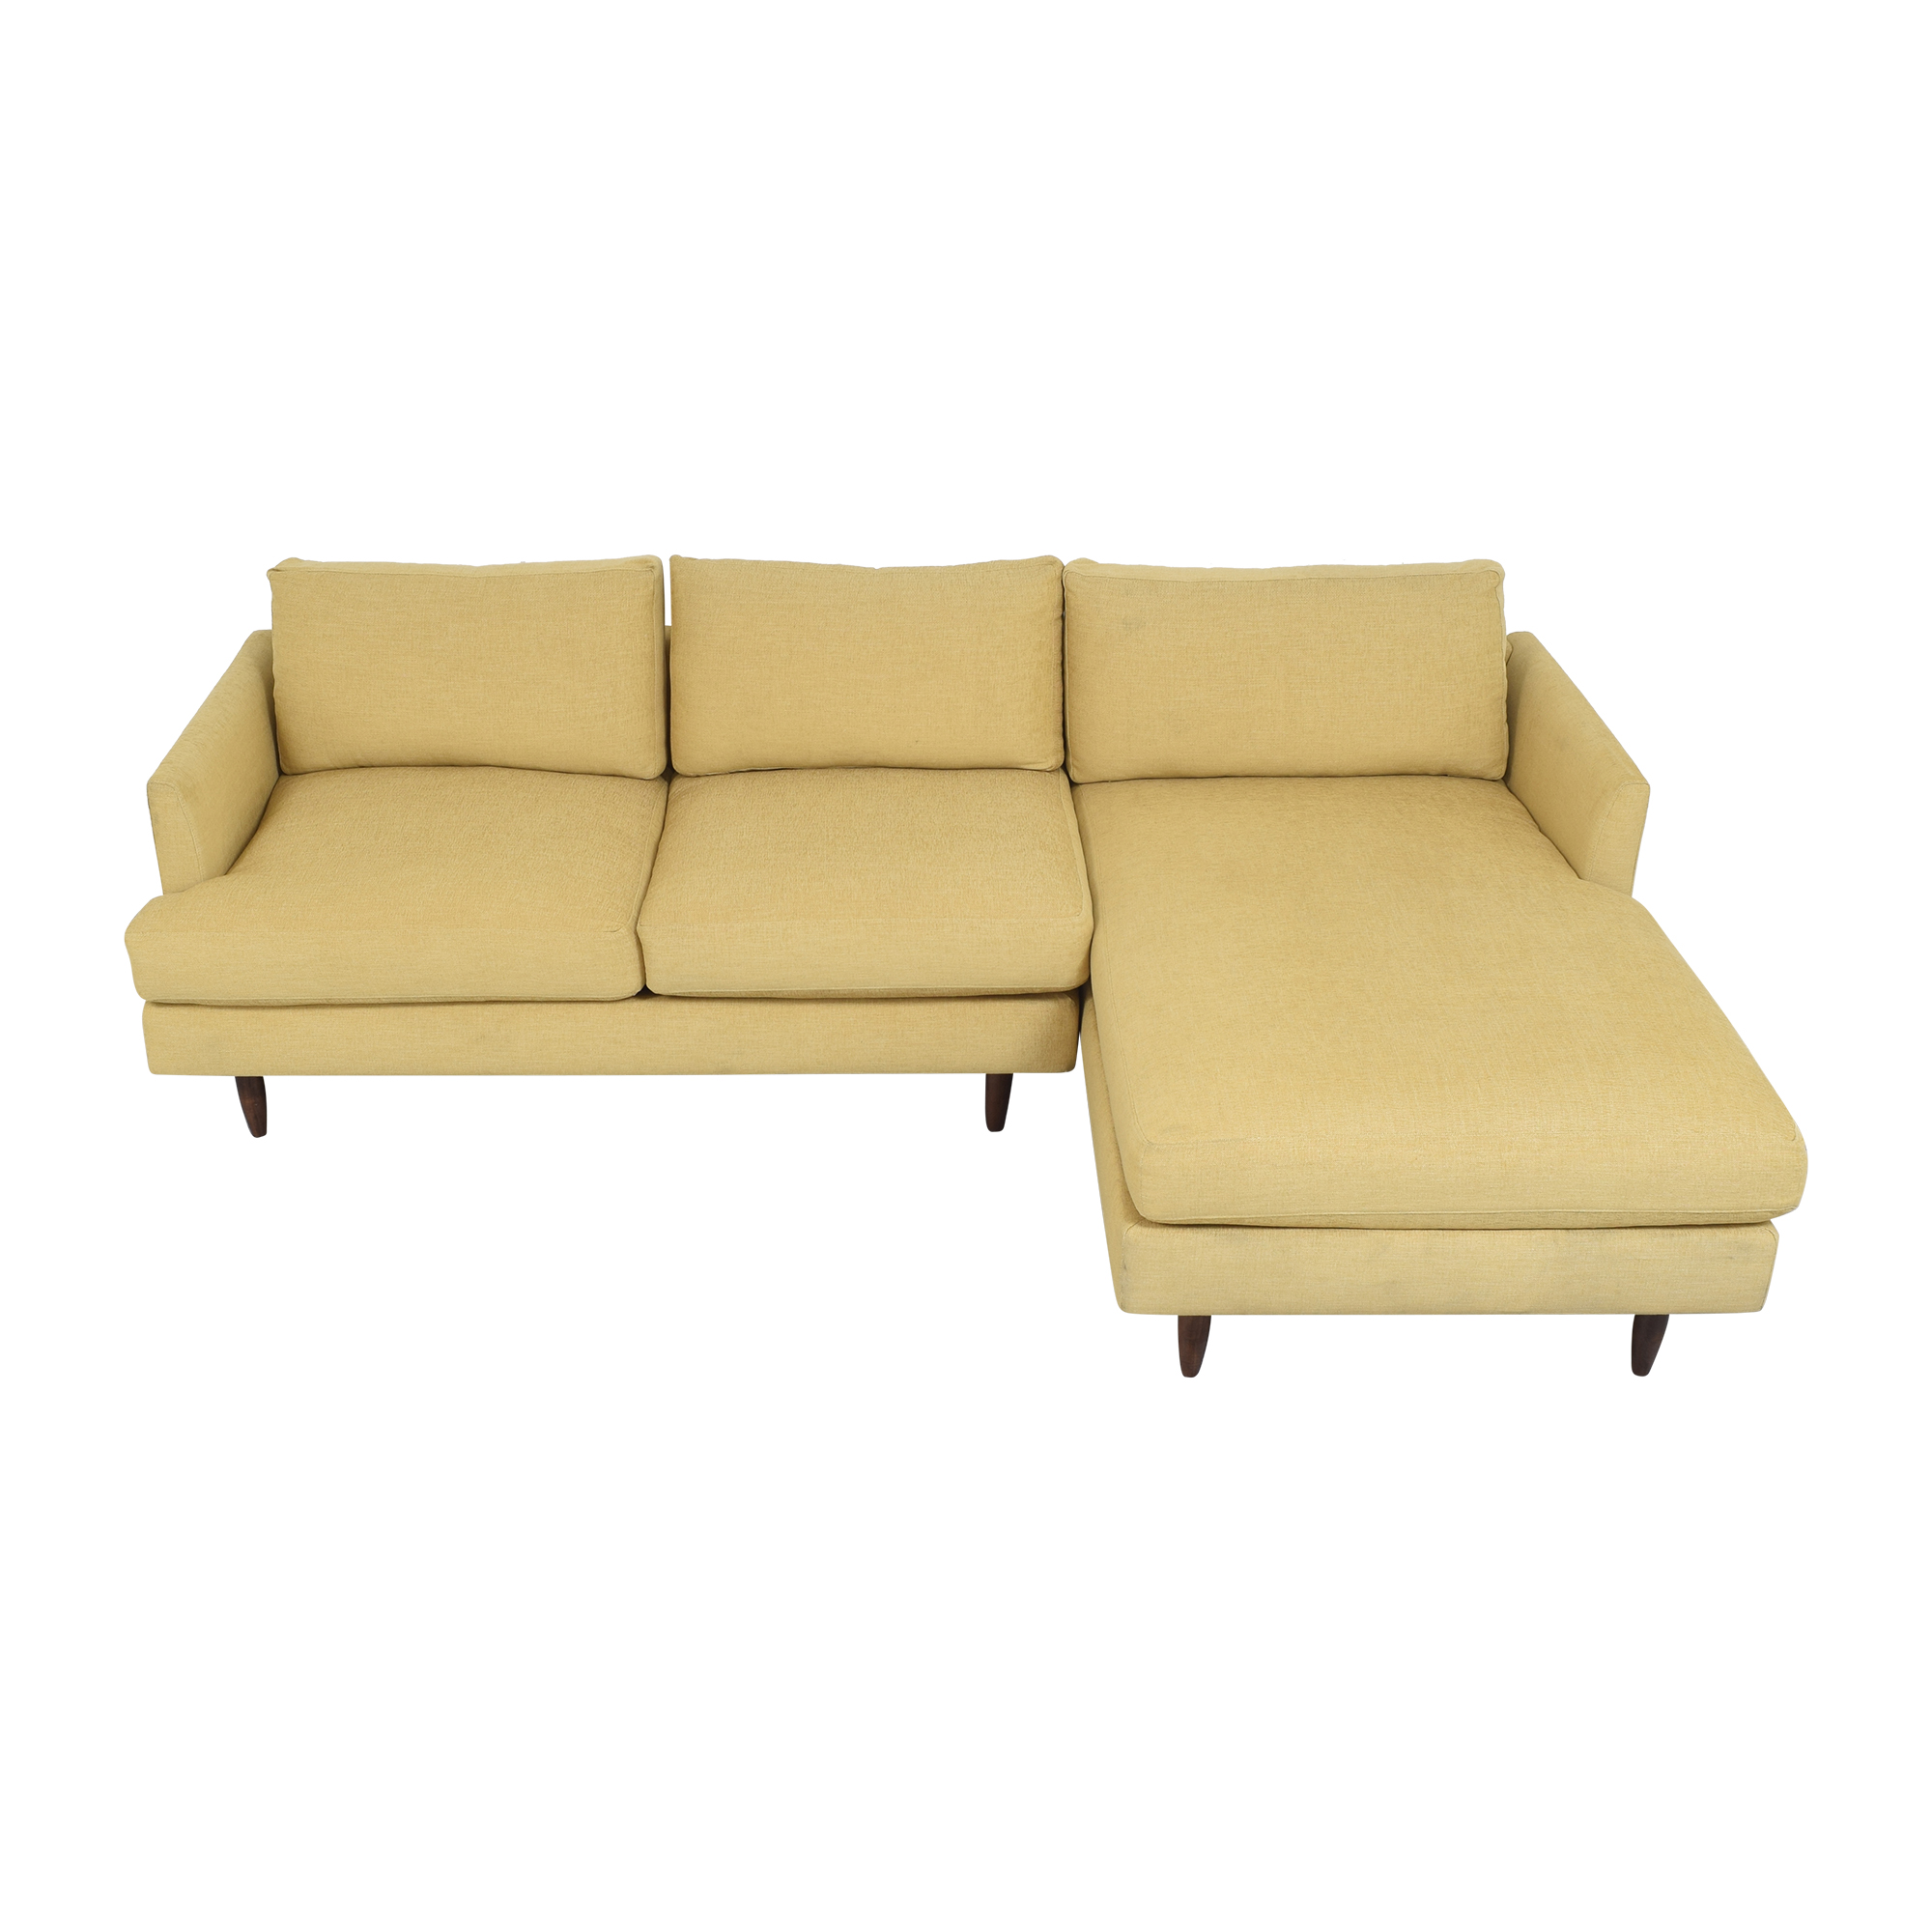 BenchMade Modern BenchMade Modern Crowd Pleaser Sofa with Chaise